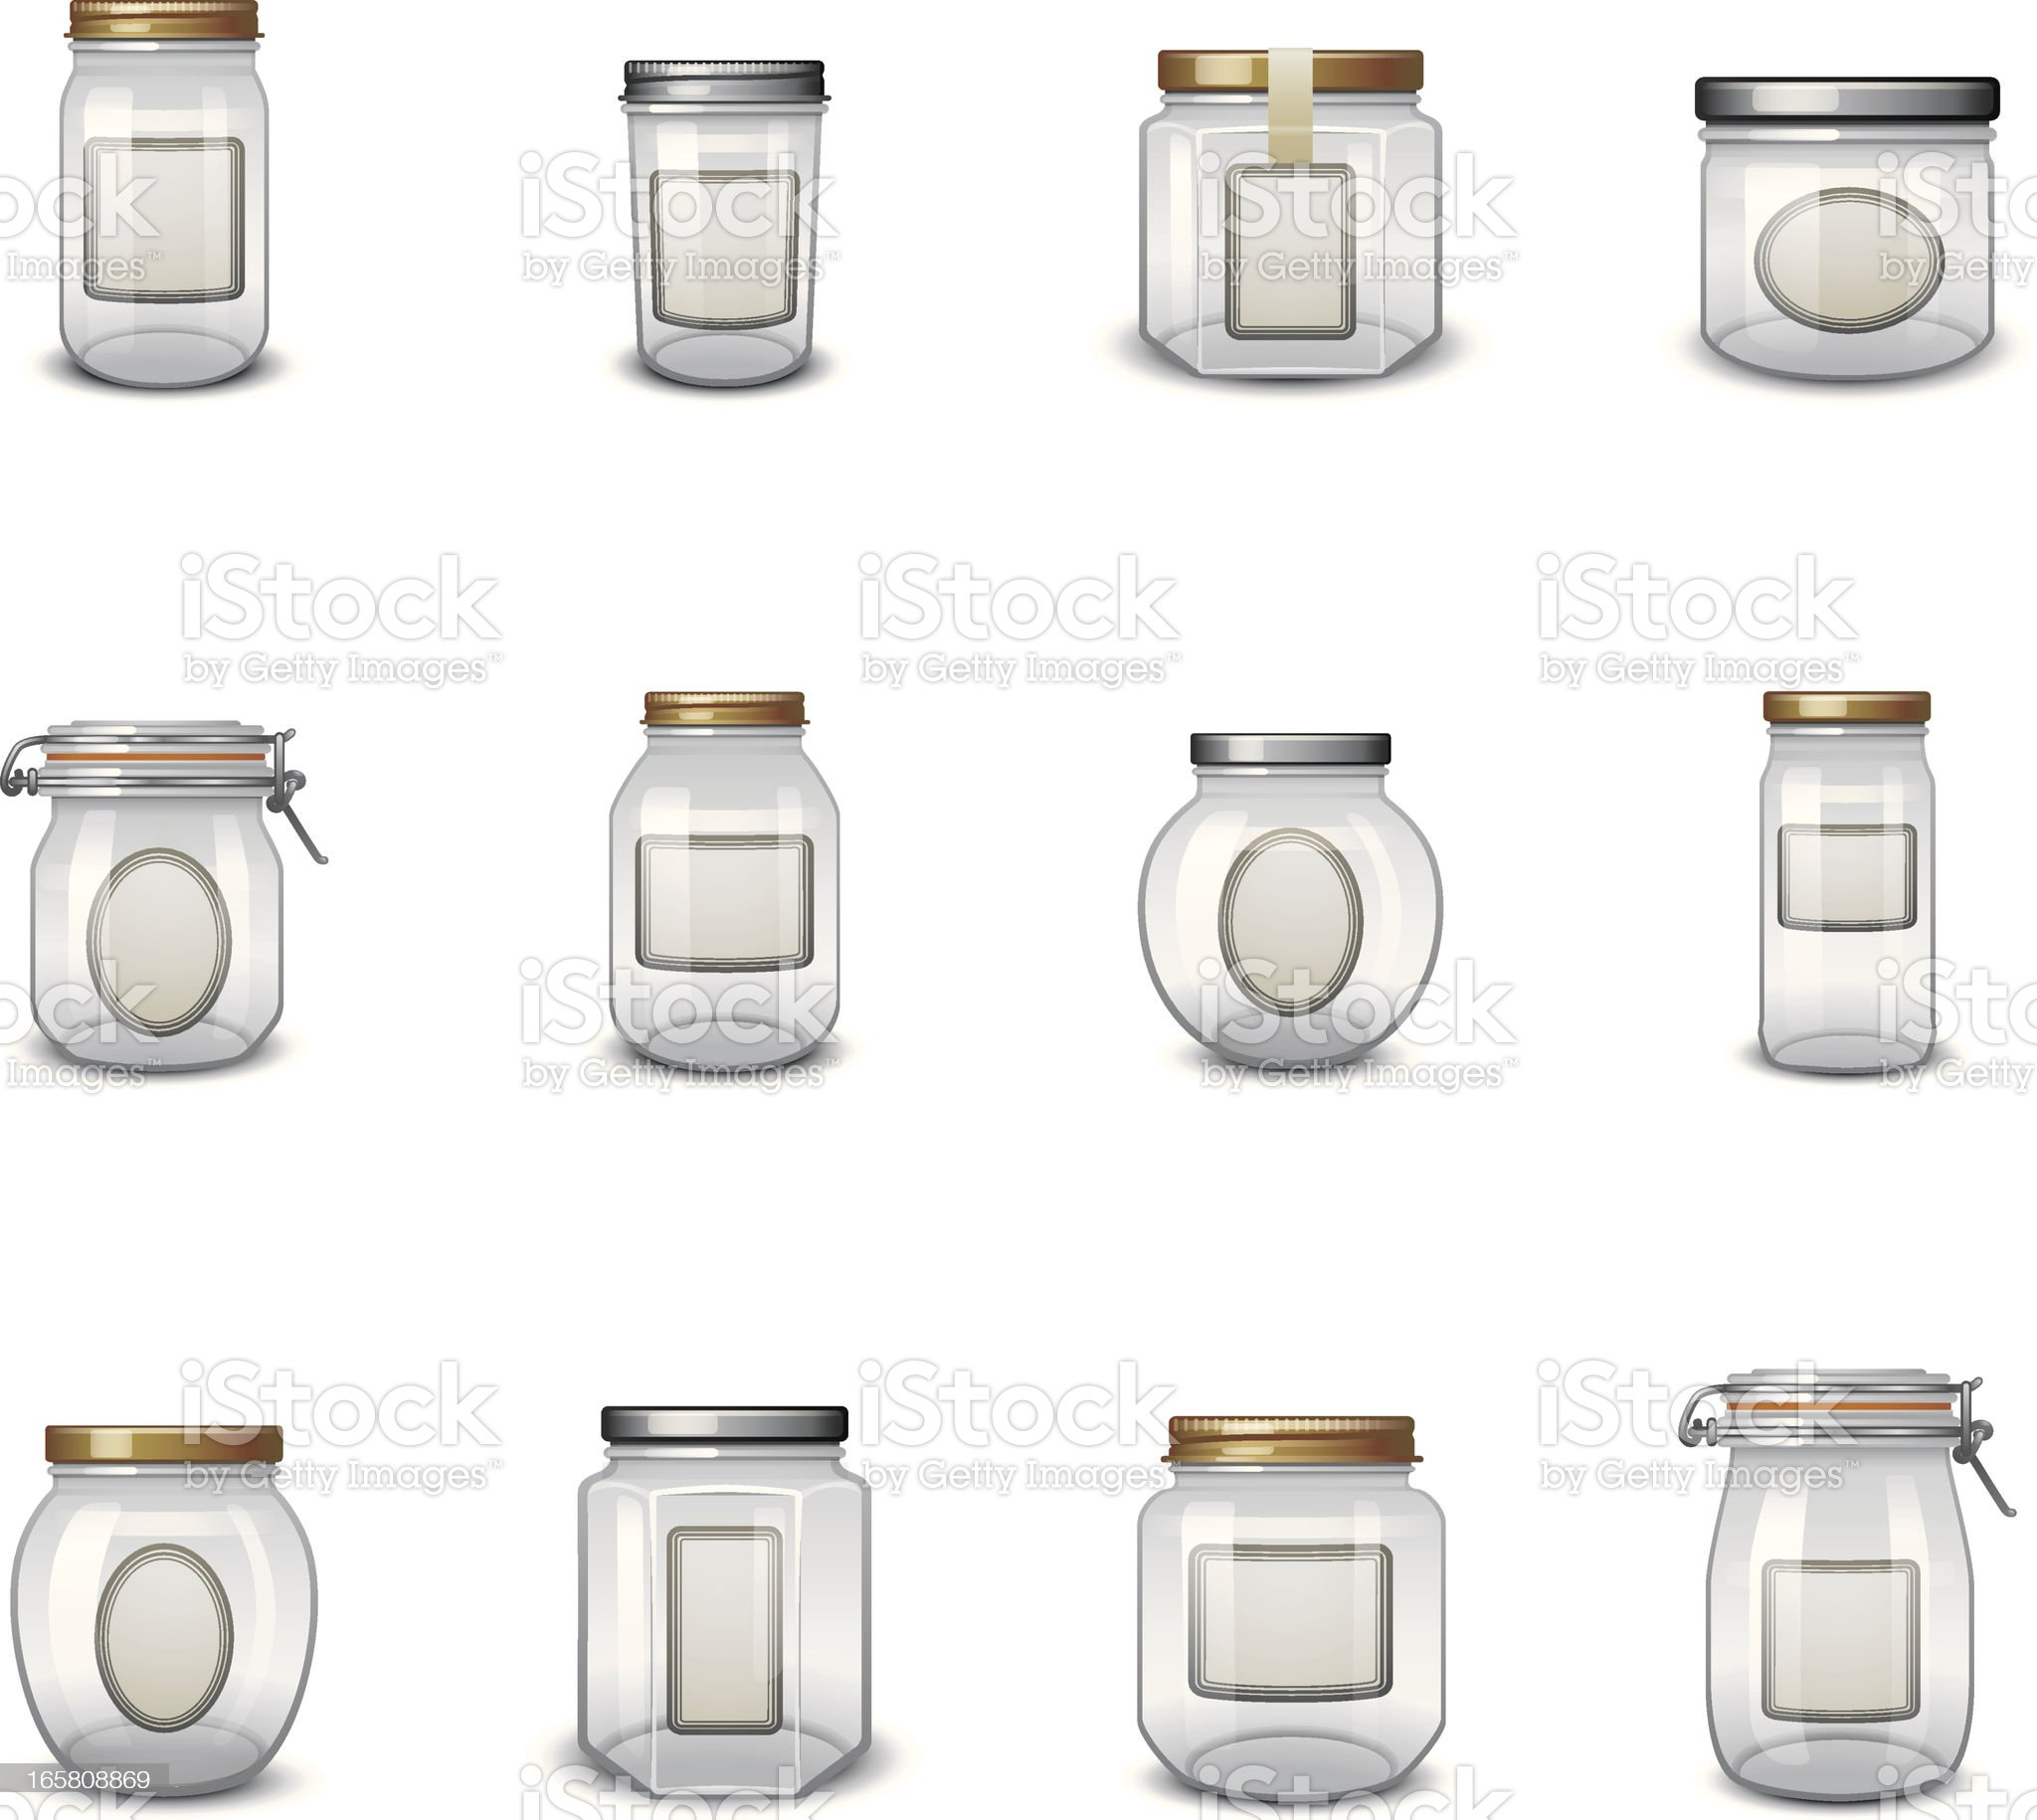 Jar Icons with Labels royalty-free stock vector art